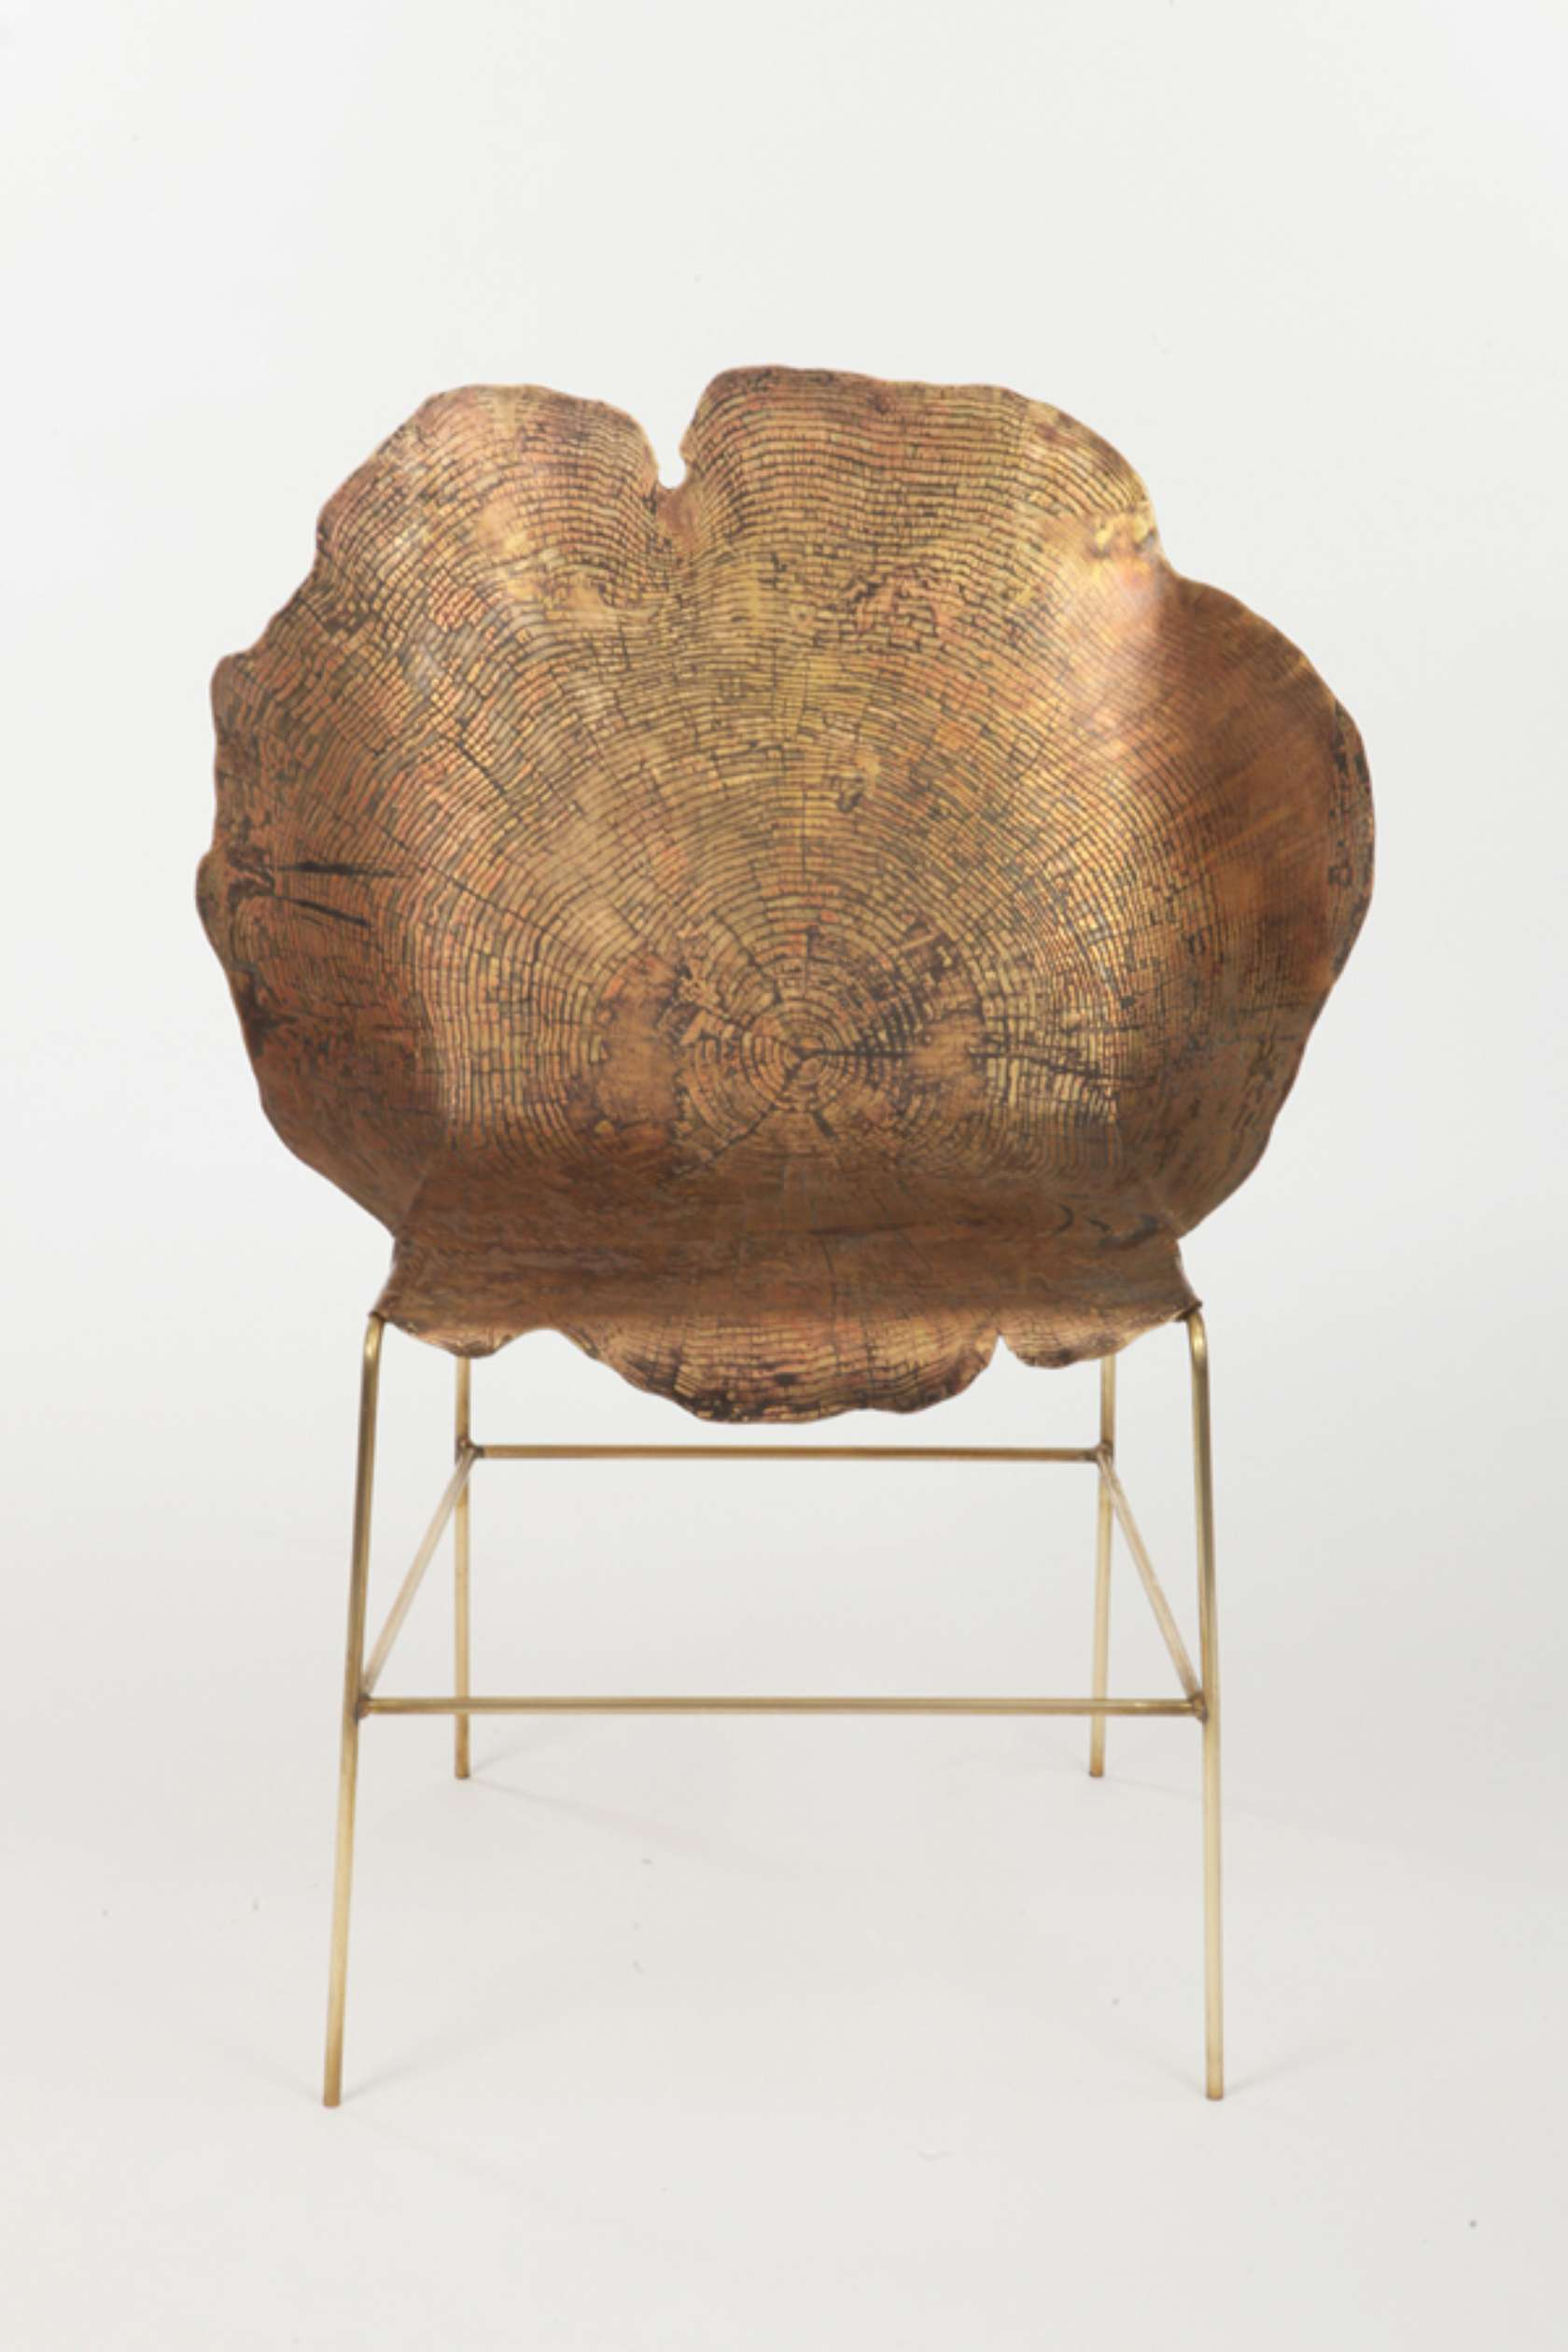 Metal chairs that channel tree stumps architizer - Chair made from tree trunk ...